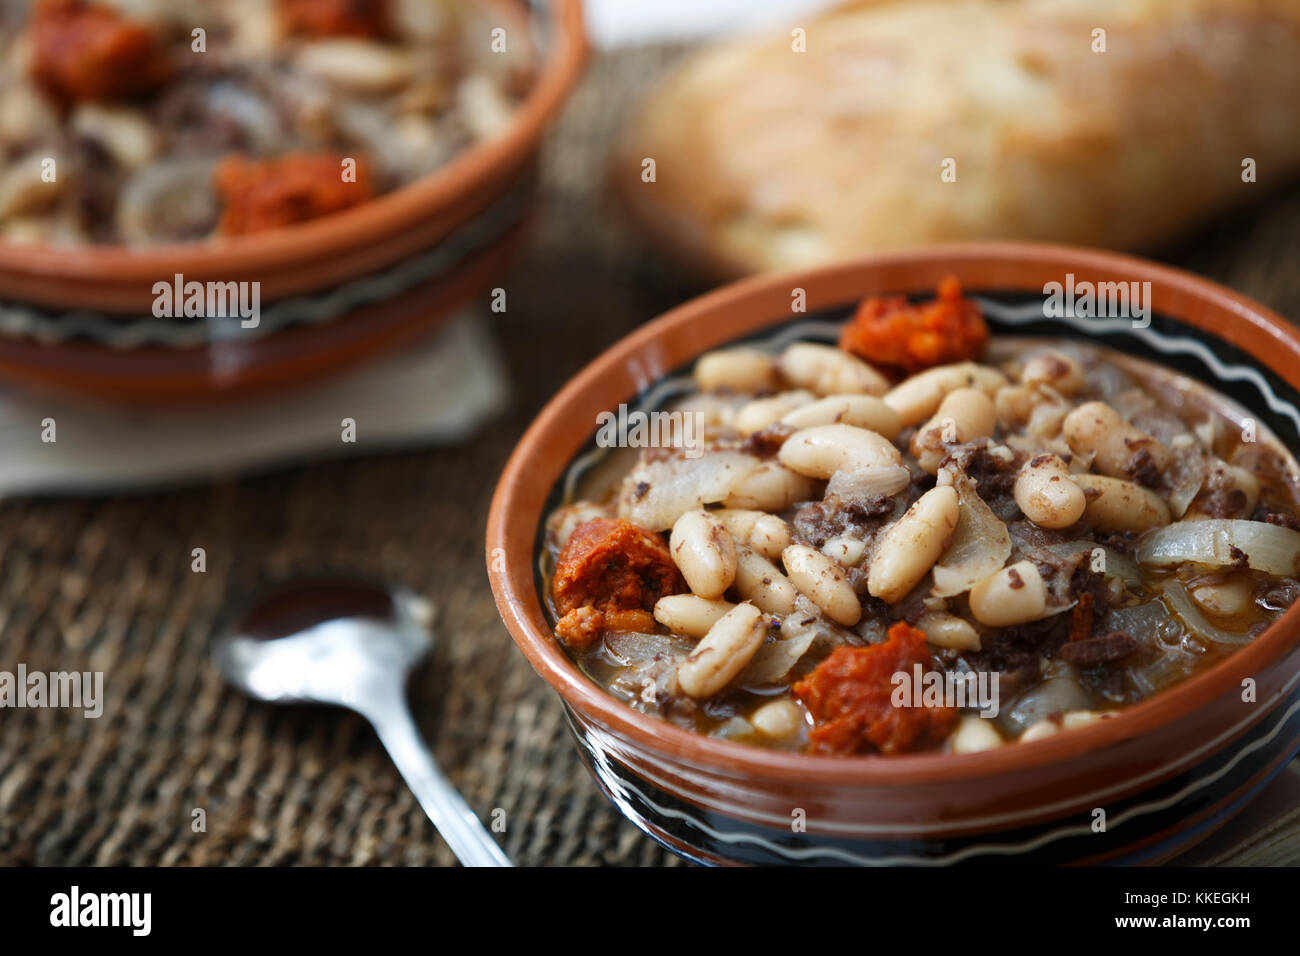 Stew of white beans with spicy sausage and bread. - Stock Image